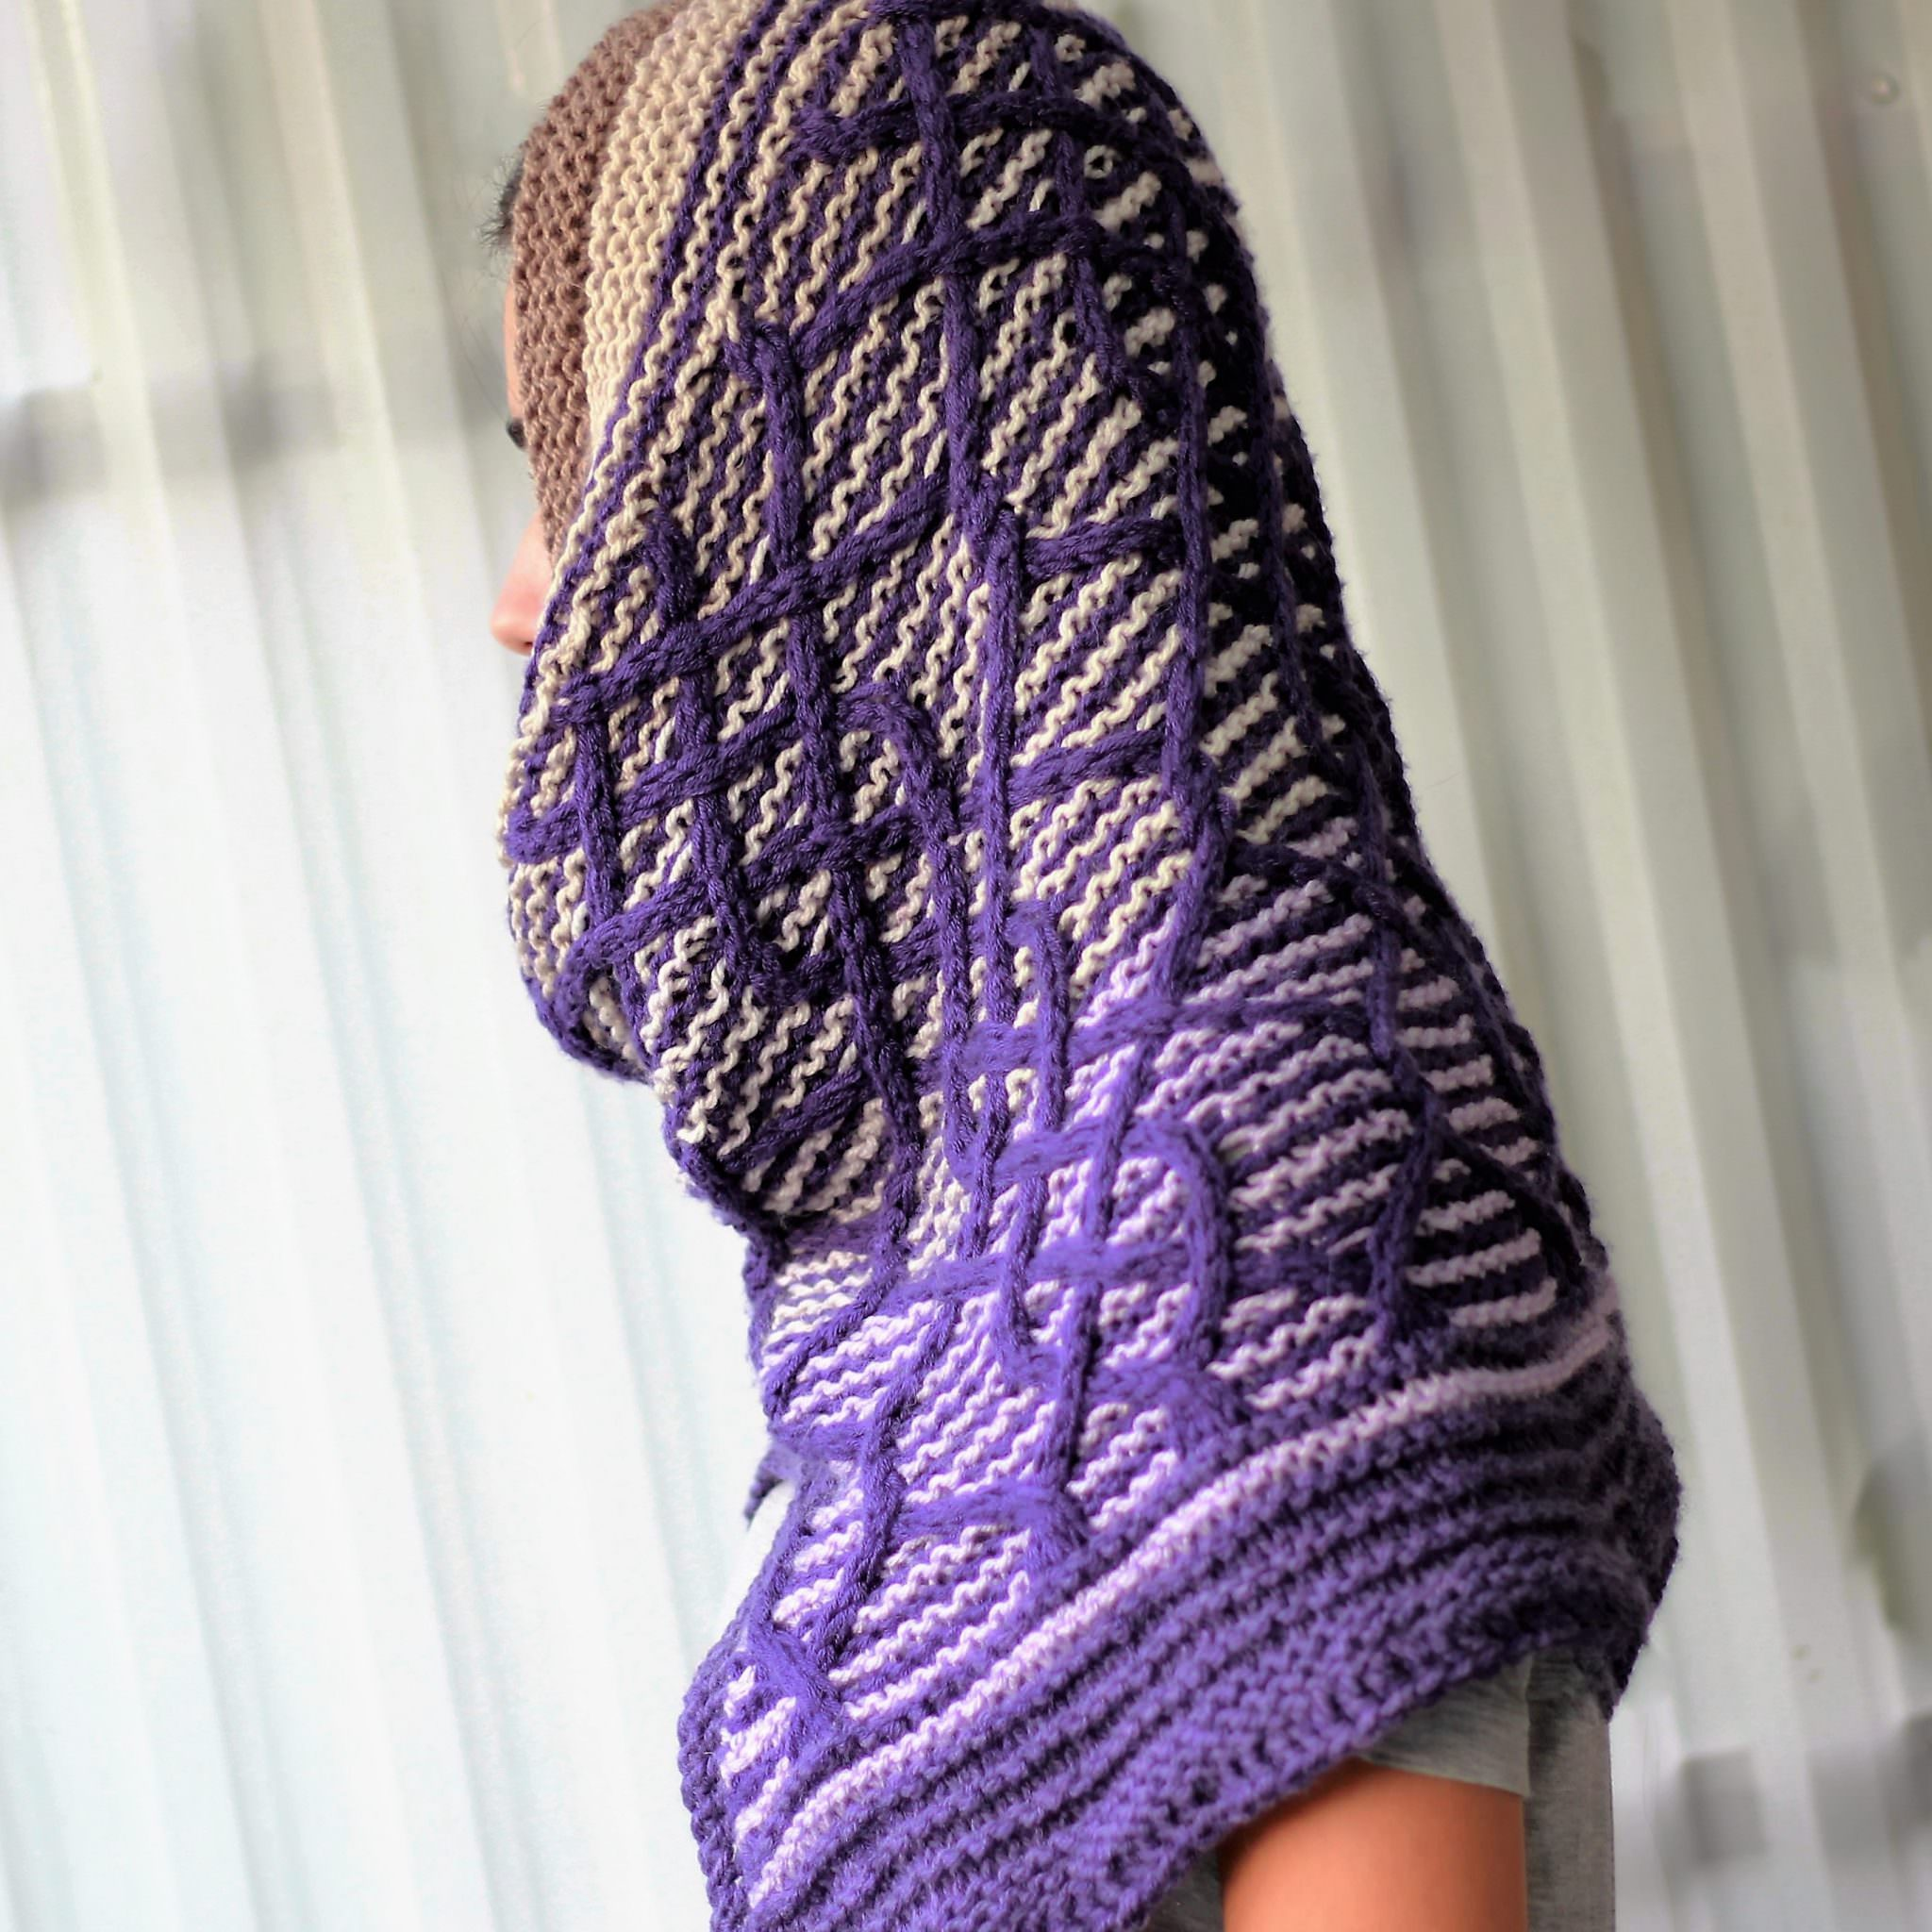 cadence / HOODED COWL - KNITTING PATTERN - The Easy Design